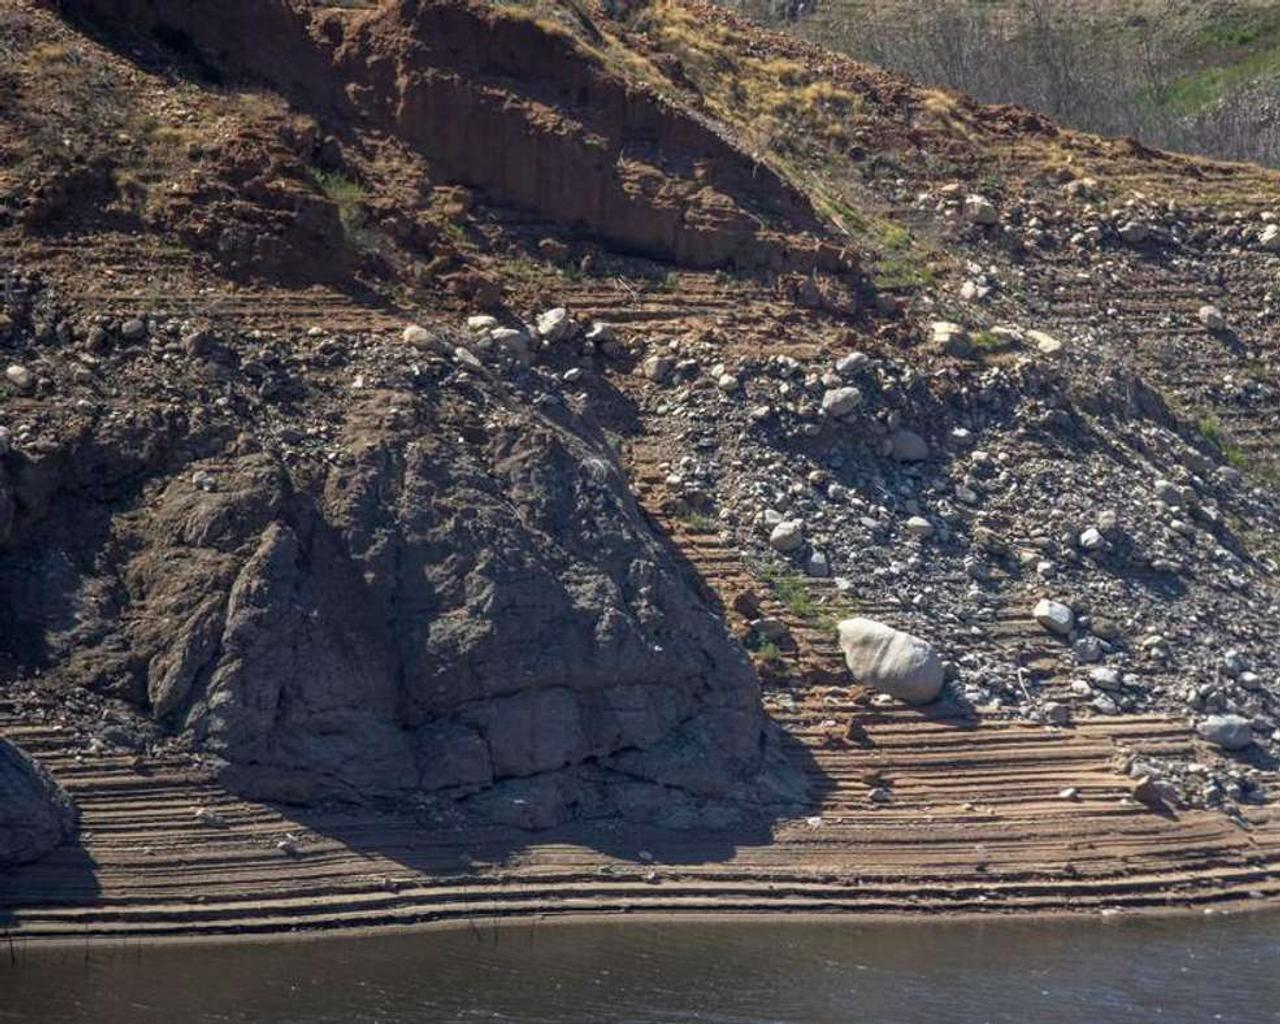 Western U.S. it is likely to enter its most severe drought in modern history